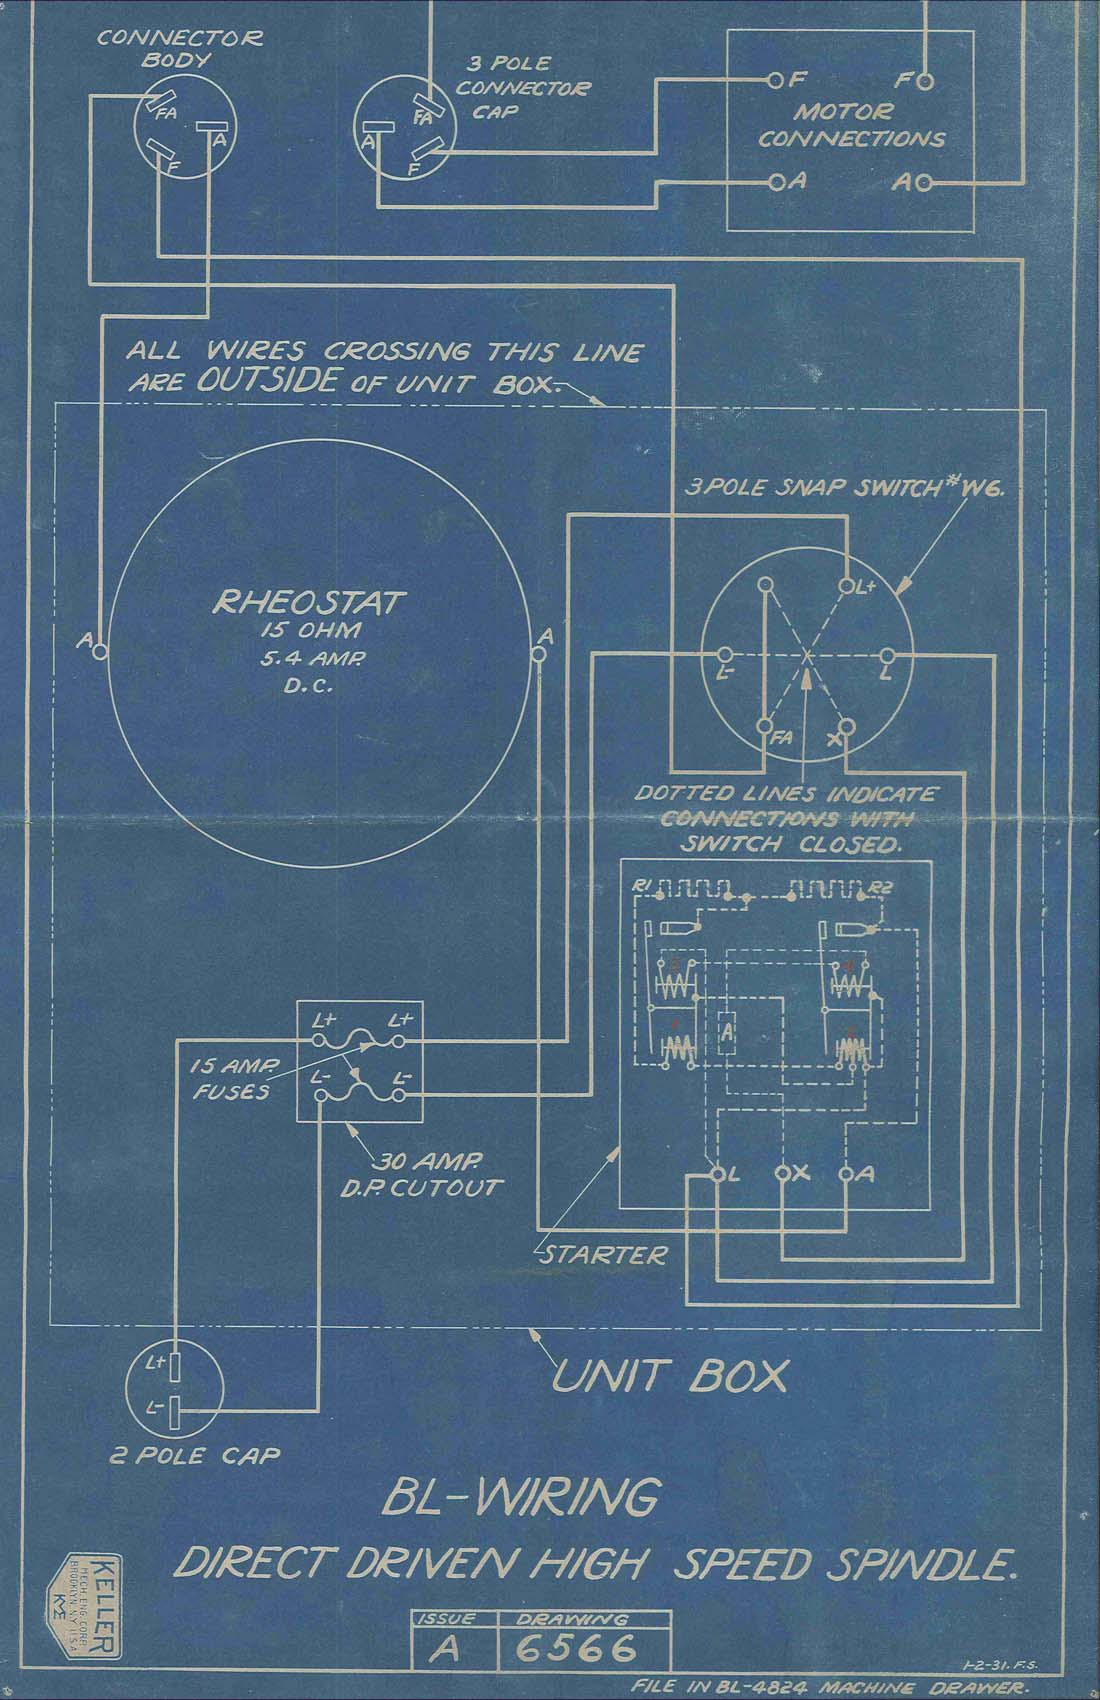 Blueprint from the Keller Mechanical Engineering Corporation Collection, Poly Archives.